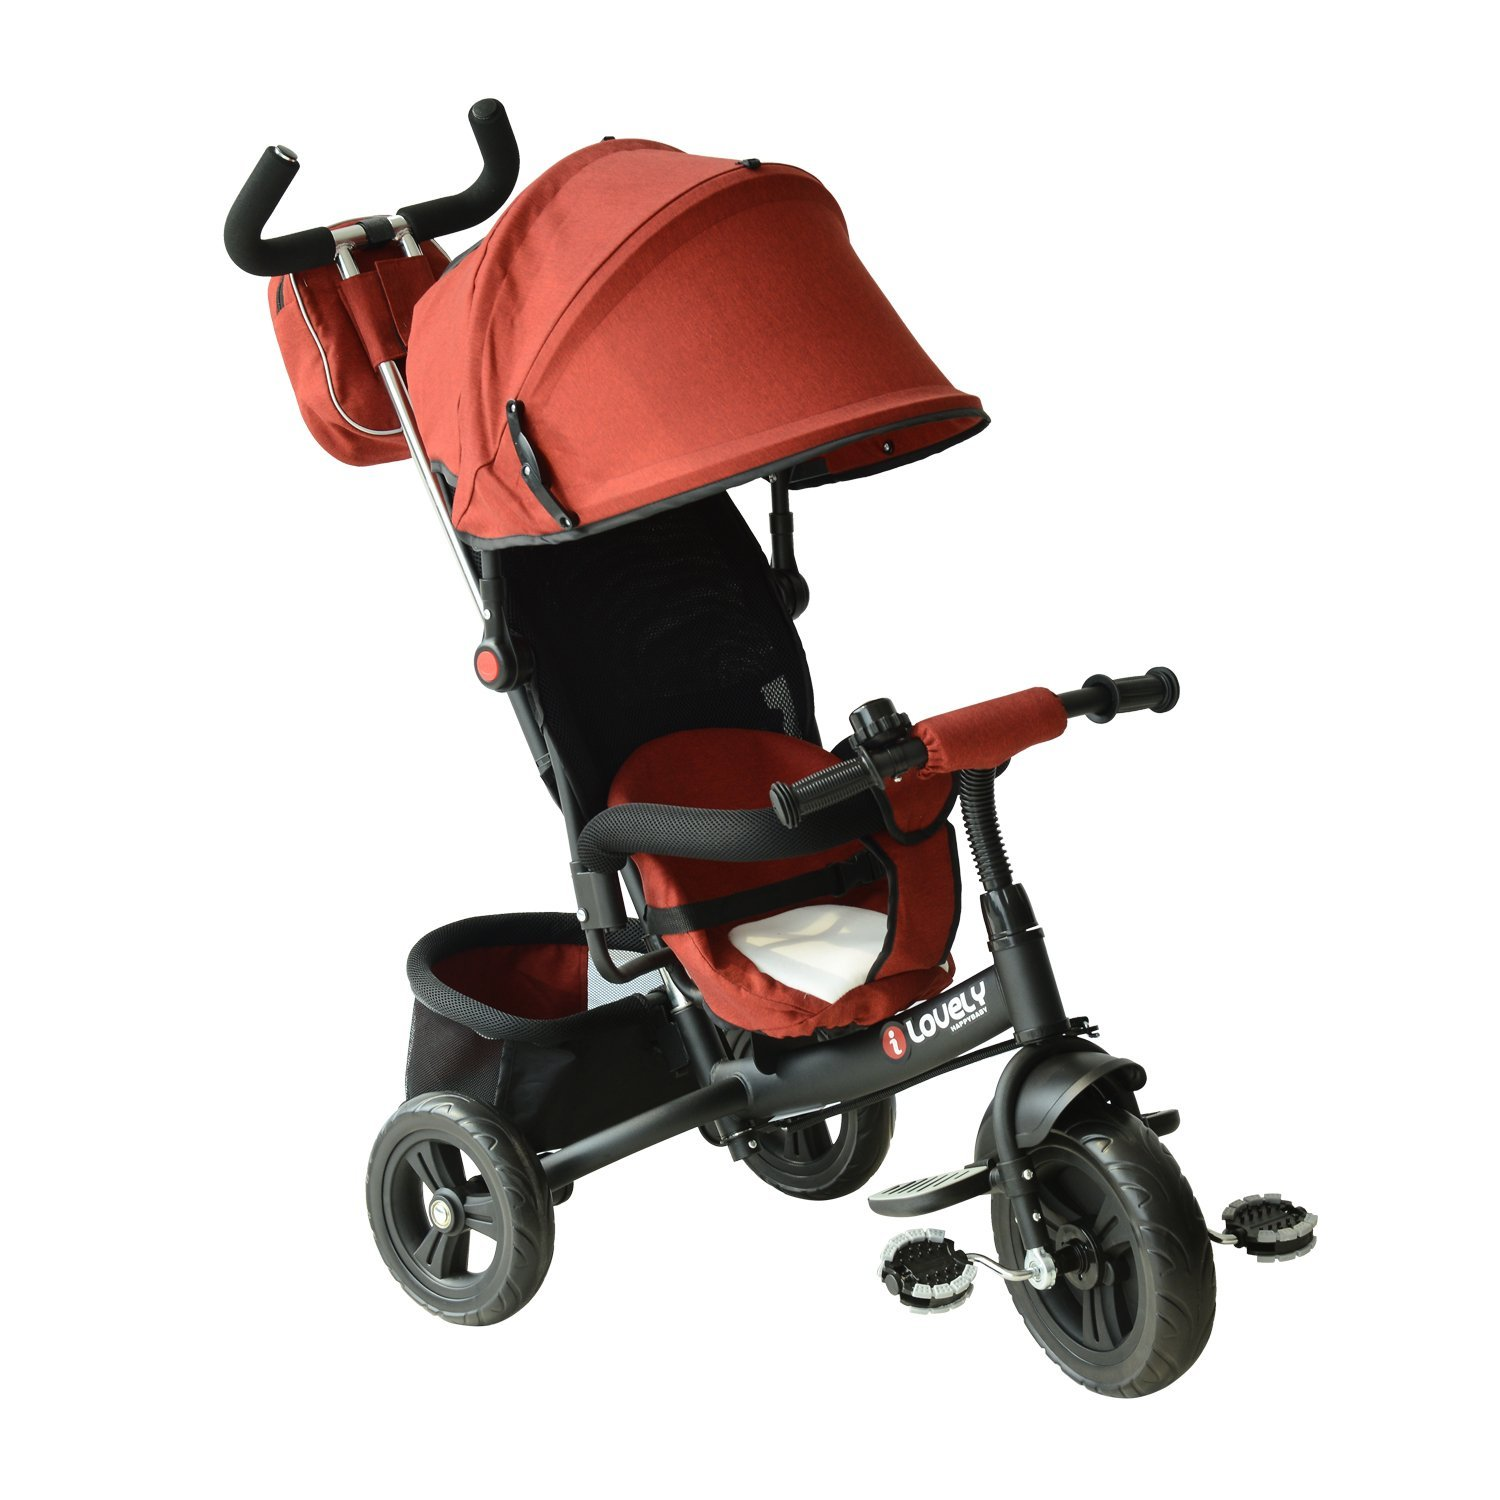 HOMCOM Tricycle Baby Stroller with Pull Handle Sunshield Deluxe metal frame for Baby Boys 96x53.5x101 cm Black and red